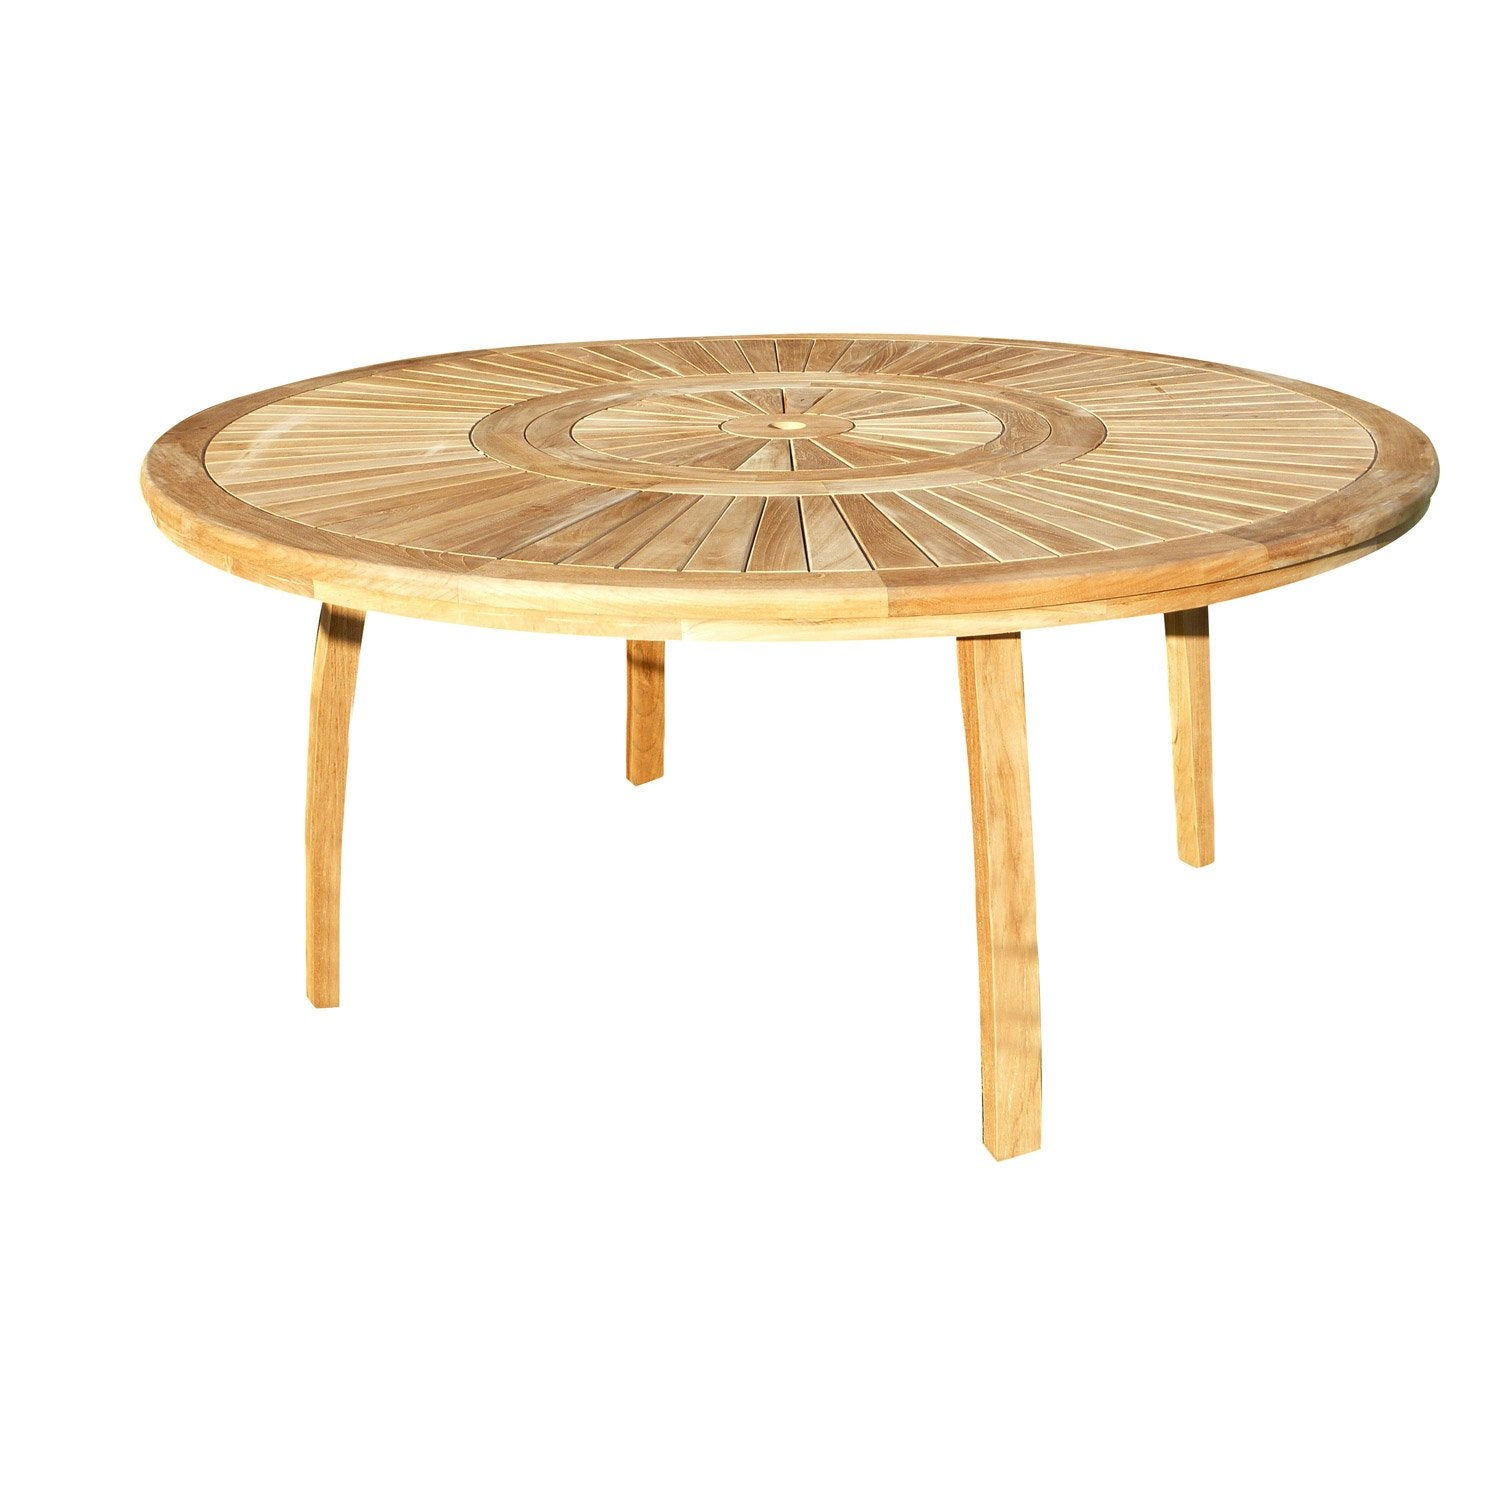 Table de jardin orion ronde naturel 8 personnes leroy merlin - Table de jardin ronde intermarche ...